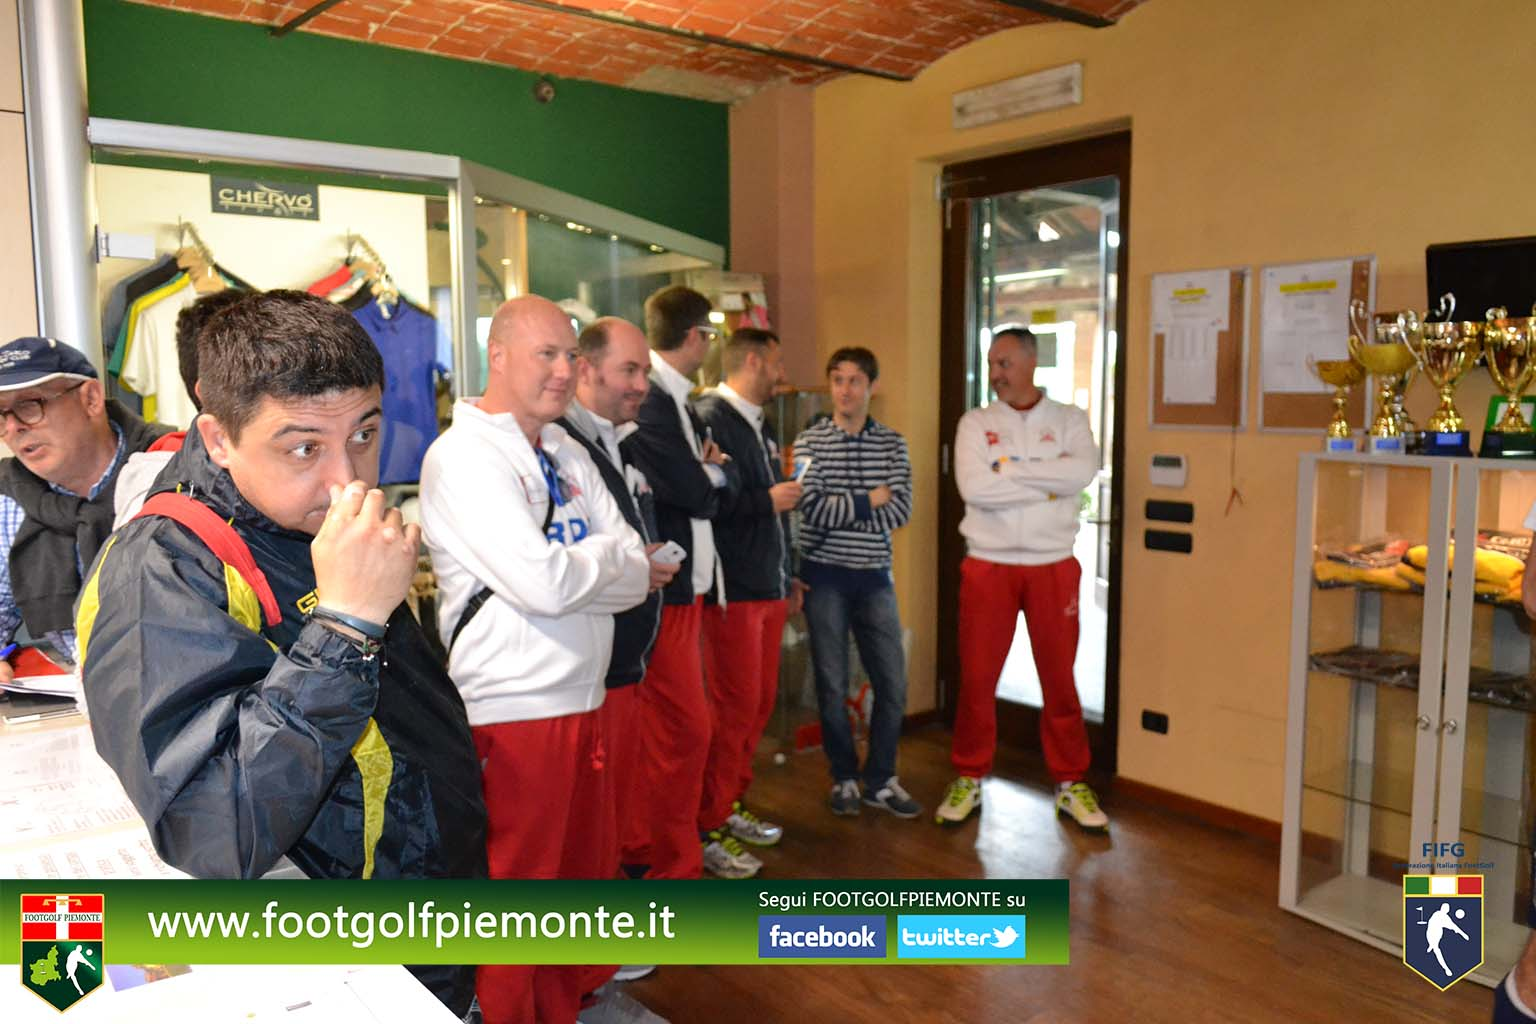 FOTO 9 Regions' Cup Footgolf Piemonte 2016 Golf Città di Asti (At) 30apr16-101